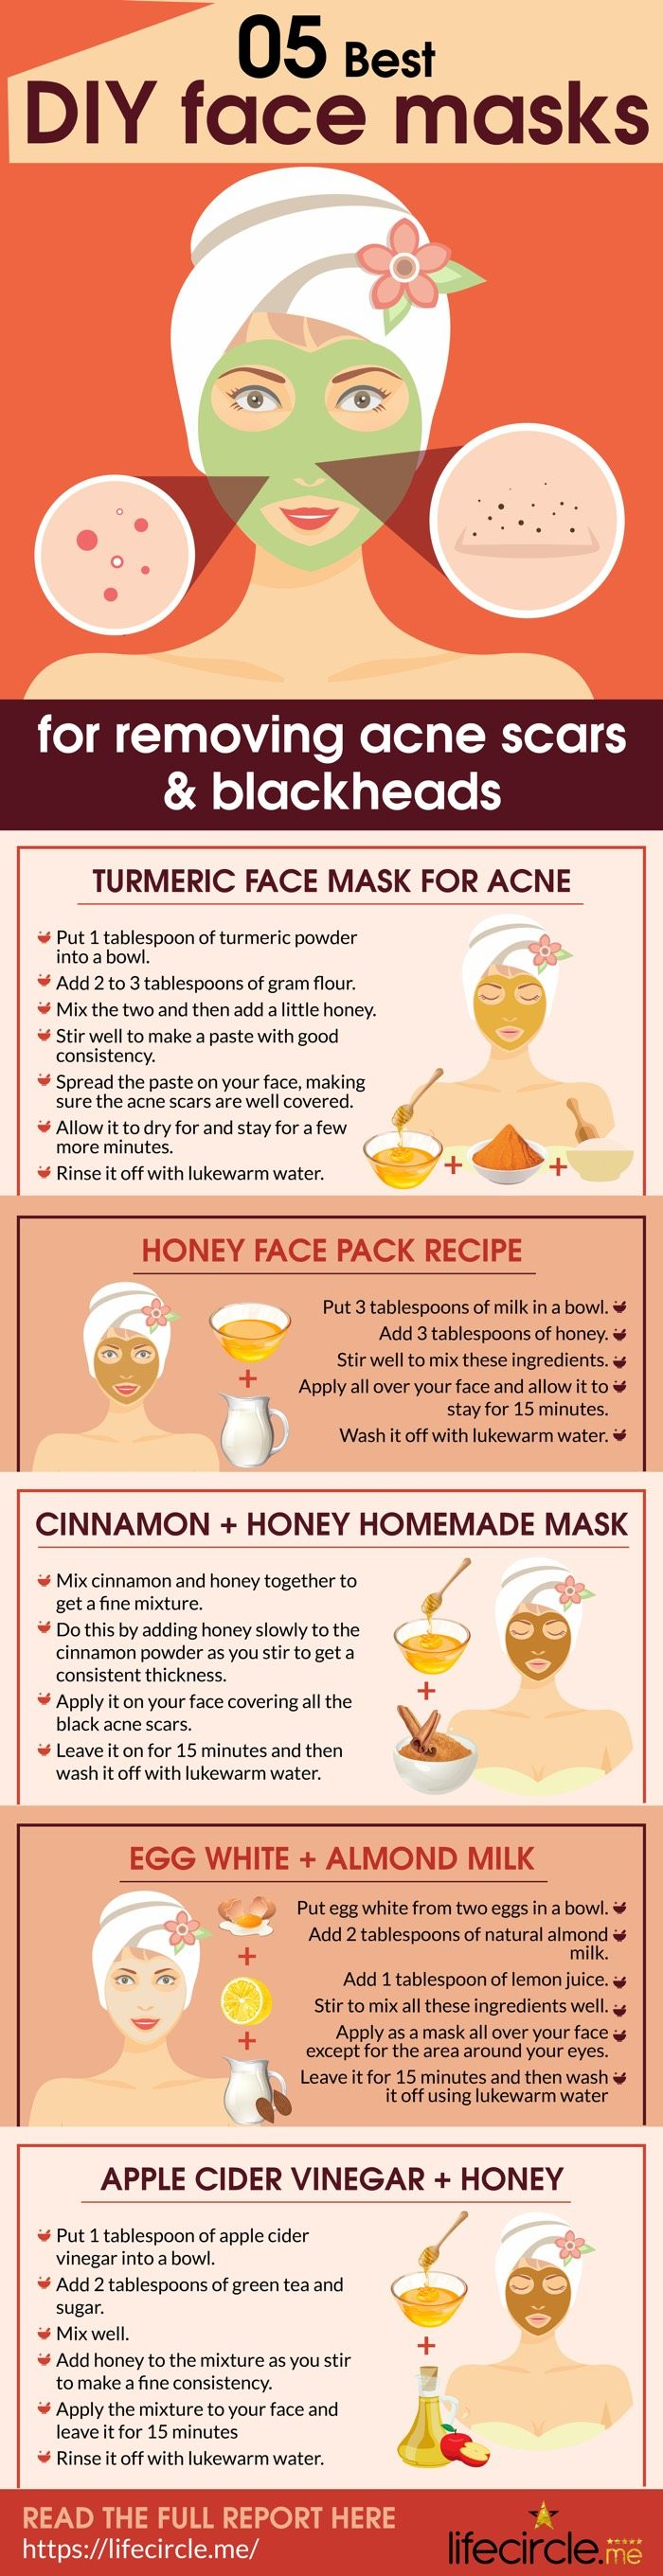 10 Best Face Masks for Acne Scars – Drugstore & DIY